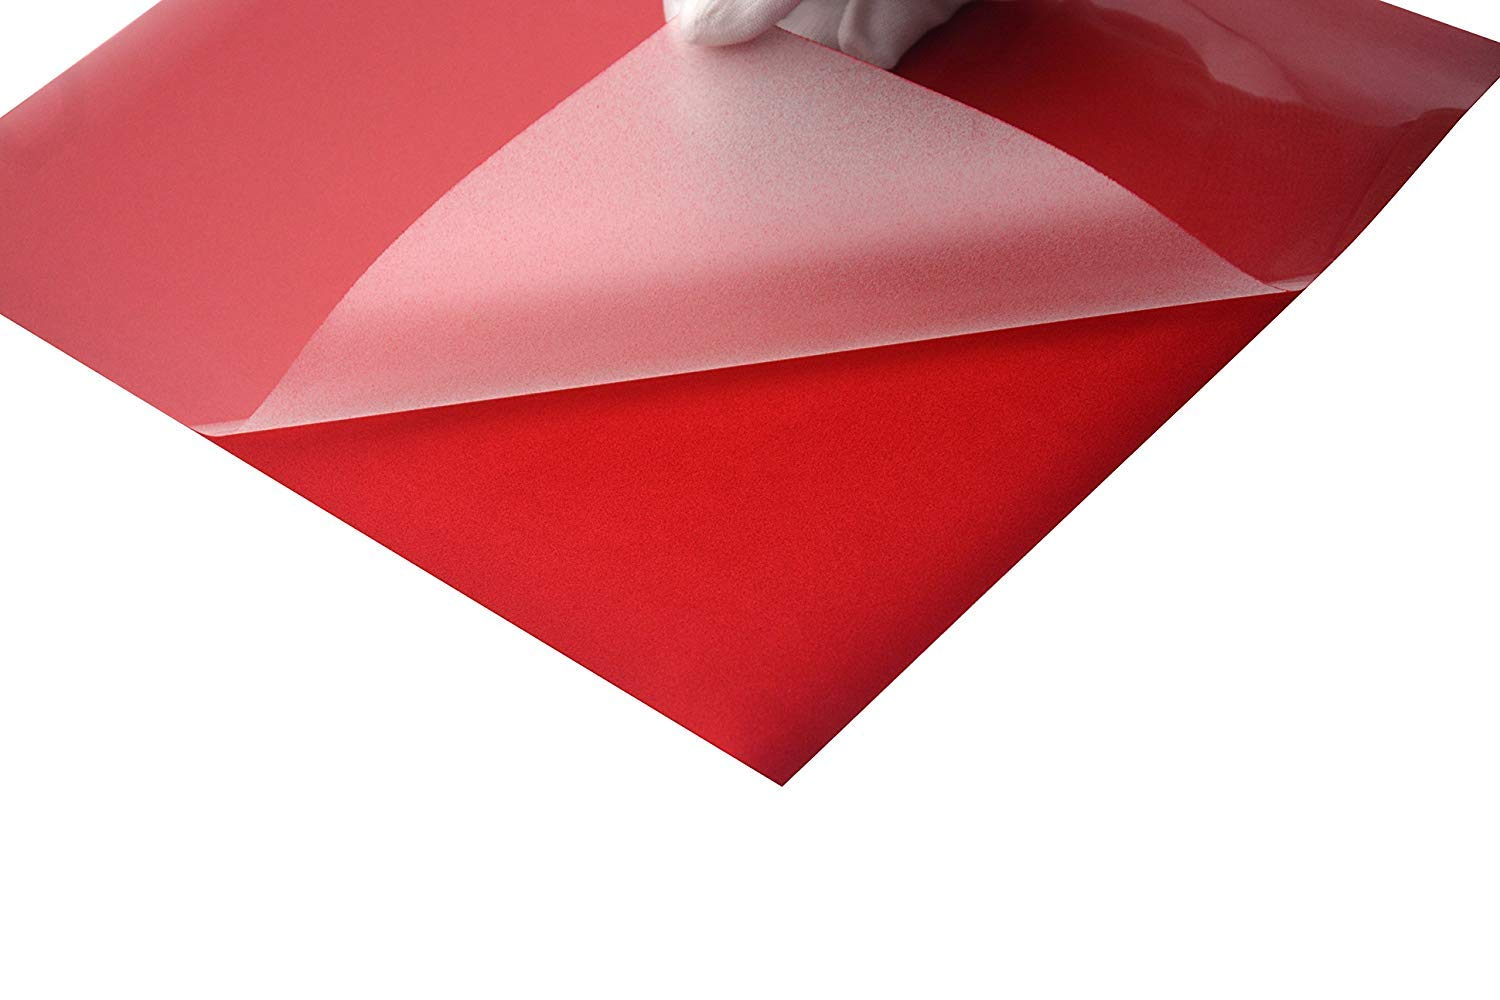 7 Sheets Flock Heat Transfer Vinyl Iron On T-Shirts 7 Assorted Colors HTV 12x10 by 7 for DIY Garment